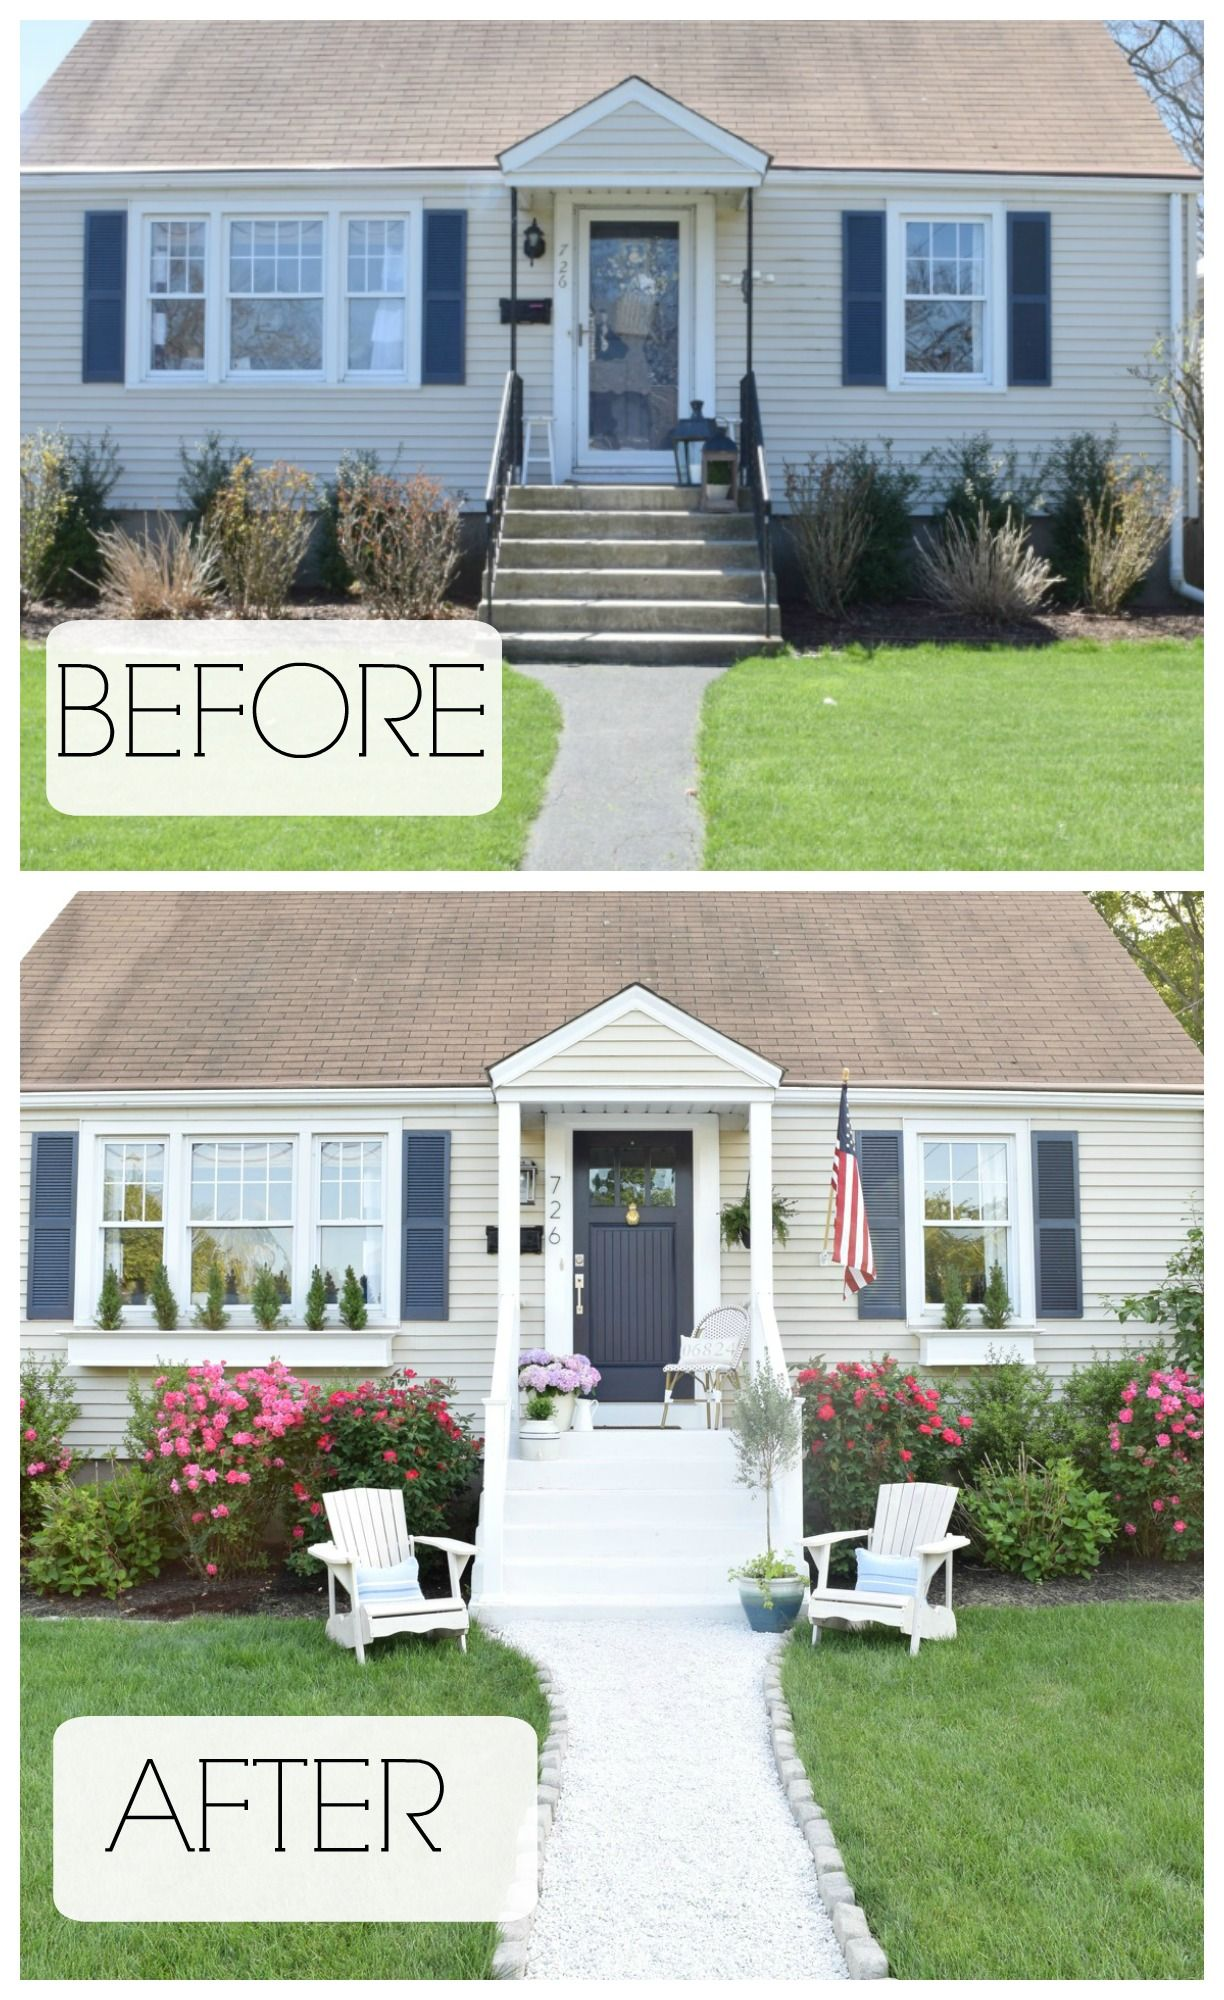 Exteriores De Casas Summer Home Tour Exterior Reveal Before And After Homes Casas